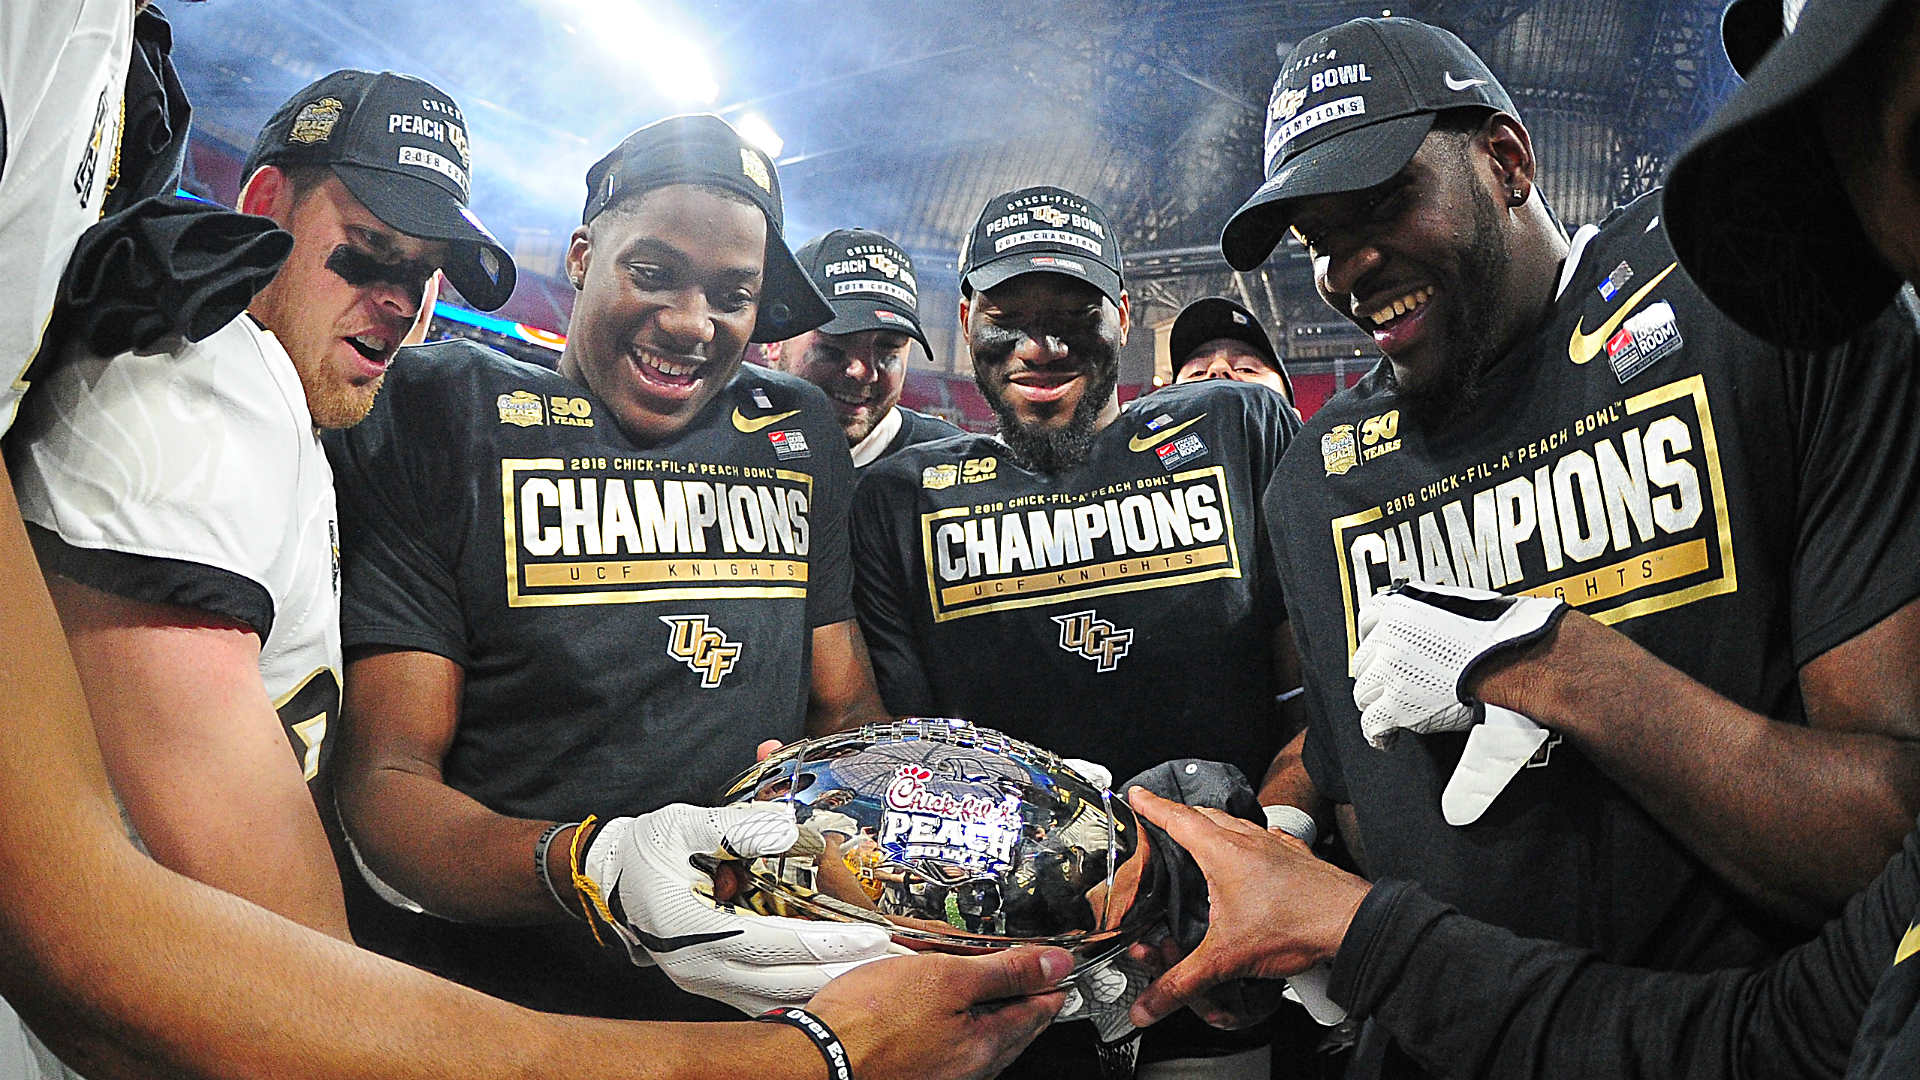 Ucf-peach-bowl-031818-getty-ftrjpg_p6wfexa79otr173hs4hq1zhyh